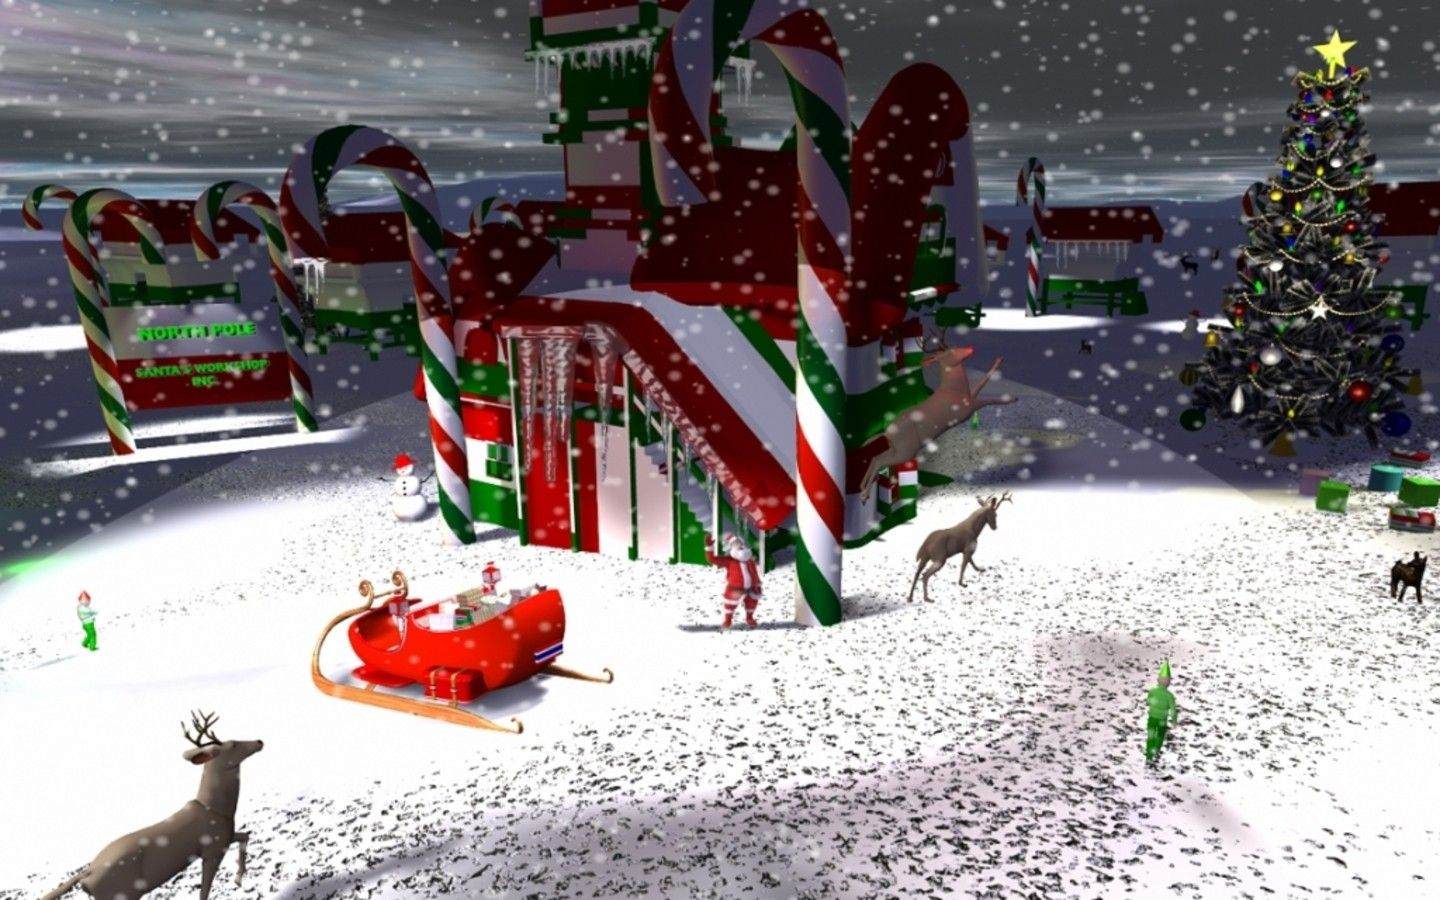 Northpole Christmas Wallpapers [HD] Wallpapers High Definition 1440x900